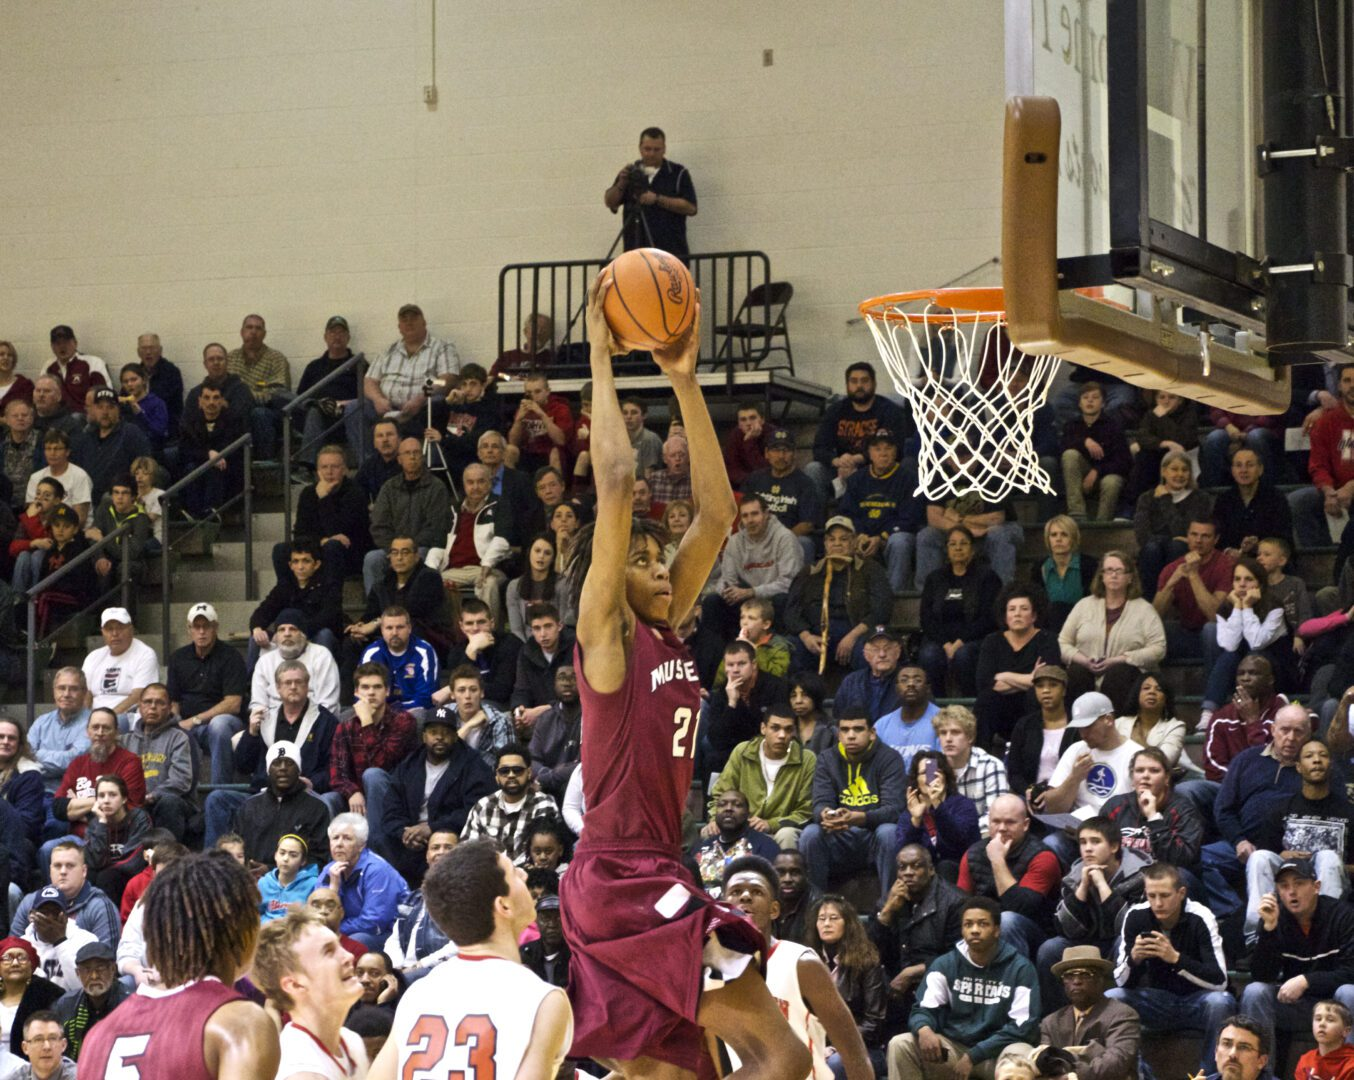 PHOTOS and VIDEO from Muskegon's win over Northview